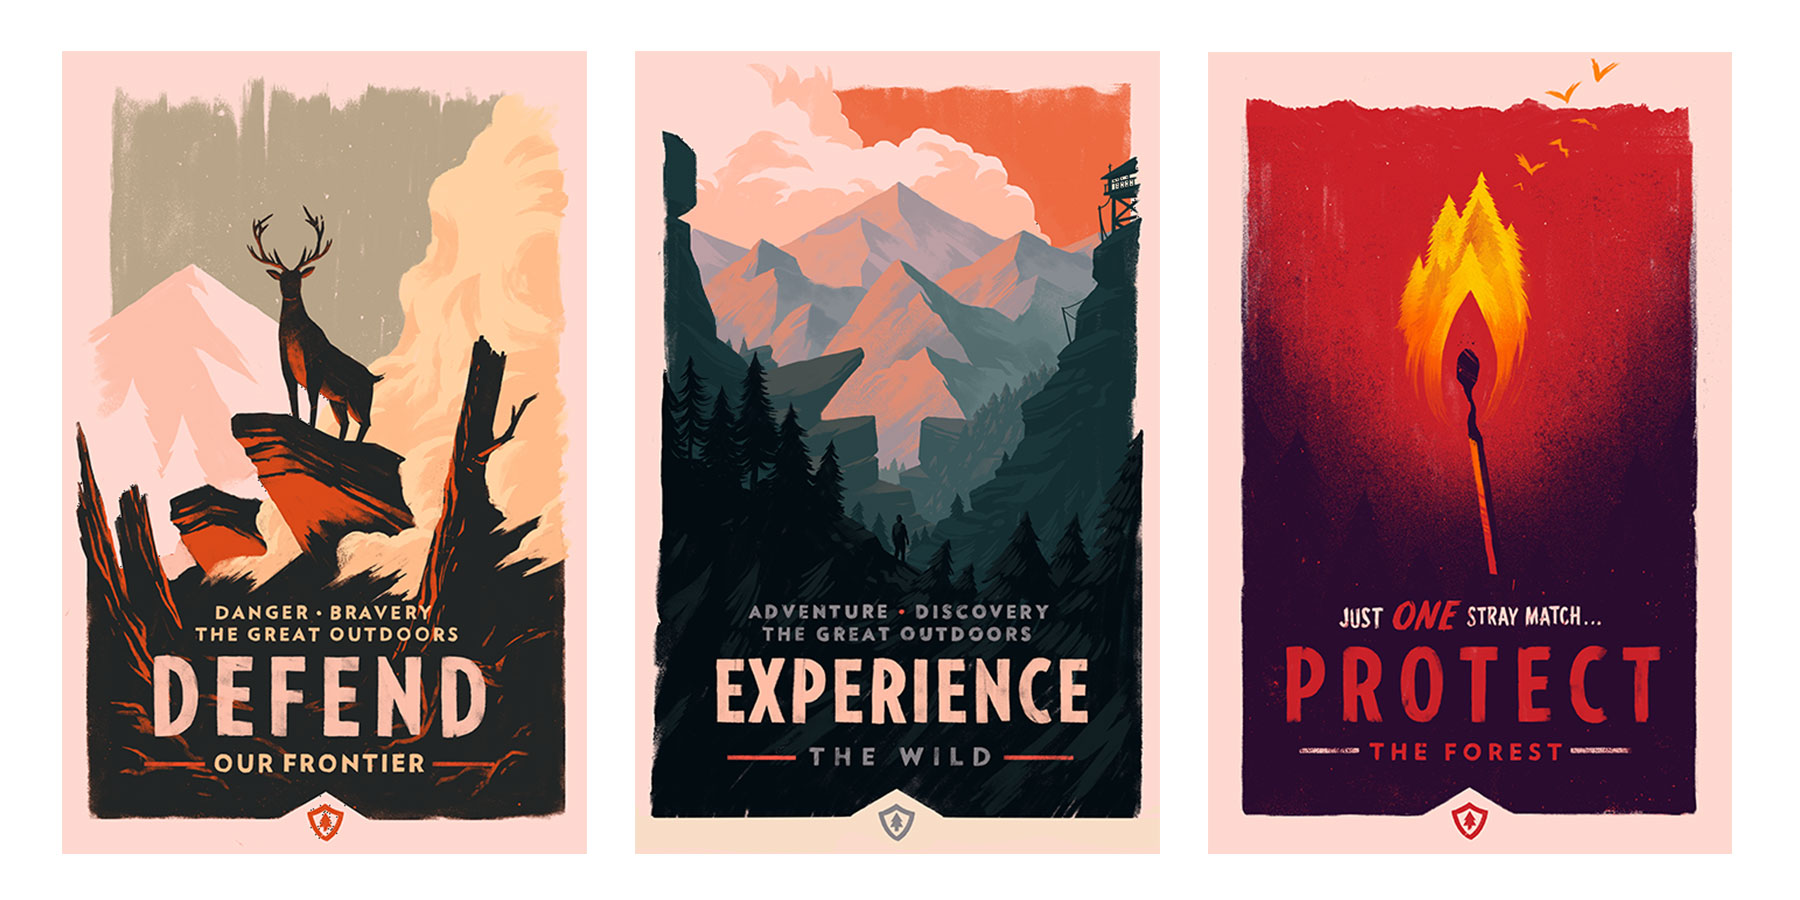 Firewatch posters